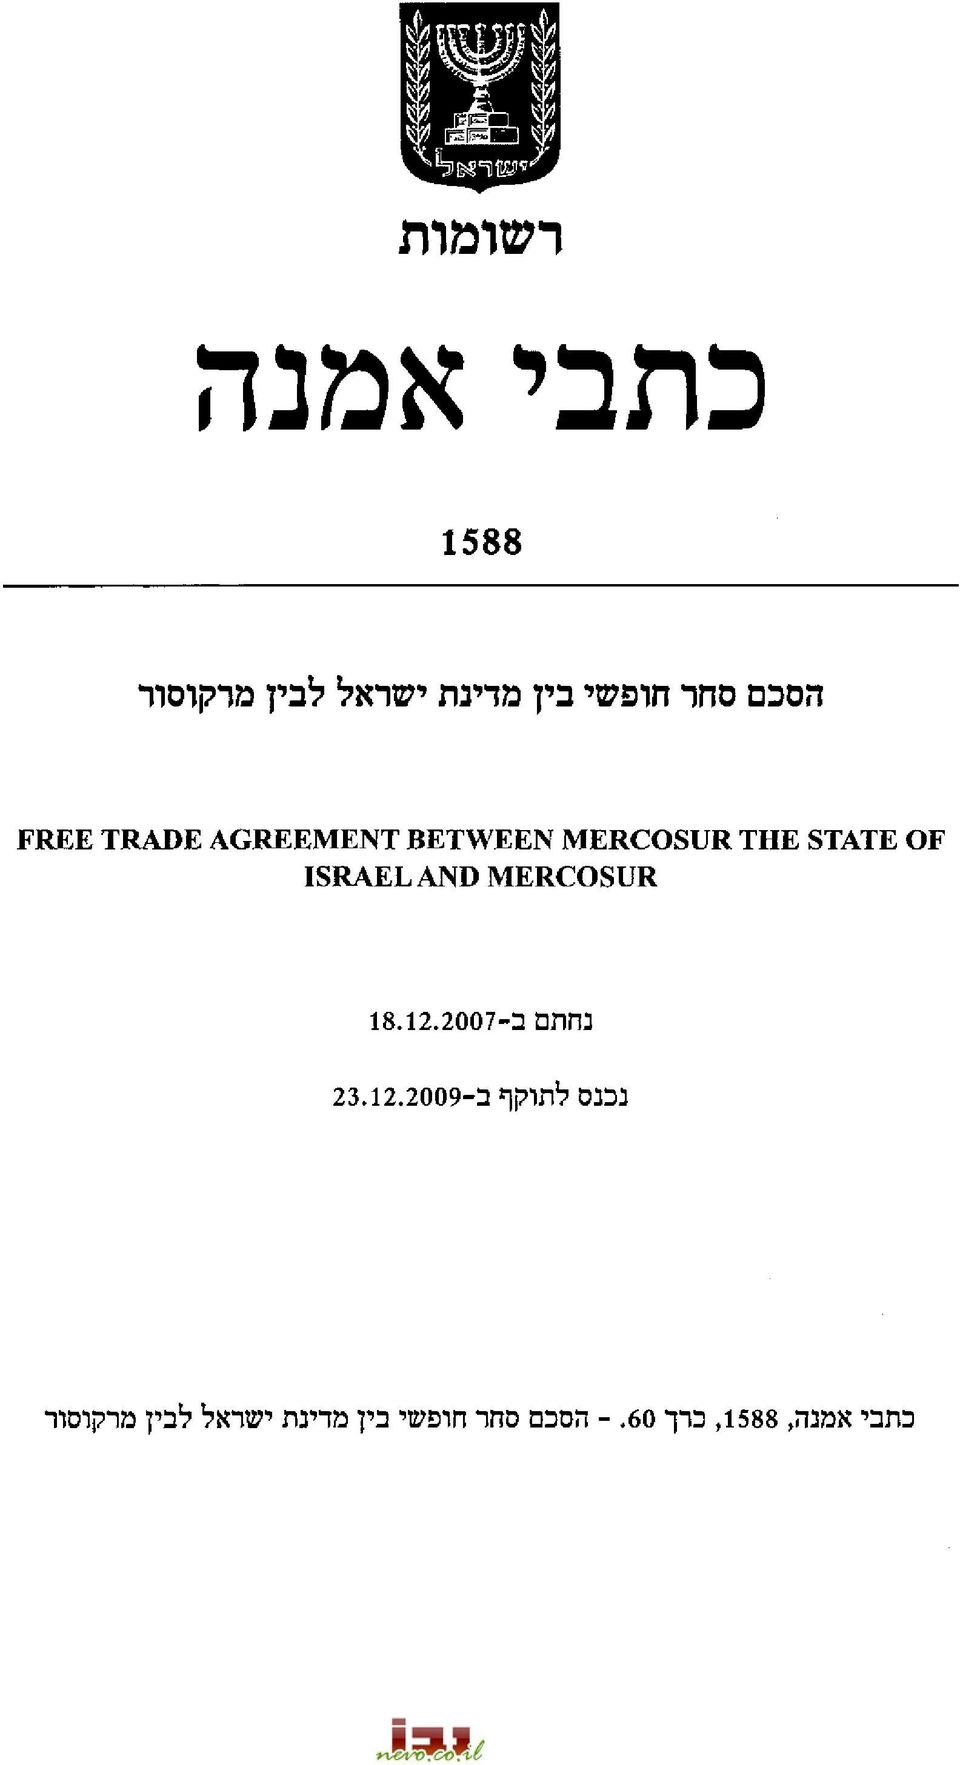 ISRAEL AND MERCOSUR נחתם ב 18.12.2007 נכנם לתוקף ב- 23.12.2009 כתבי אמנה, 1588, כרך 60.